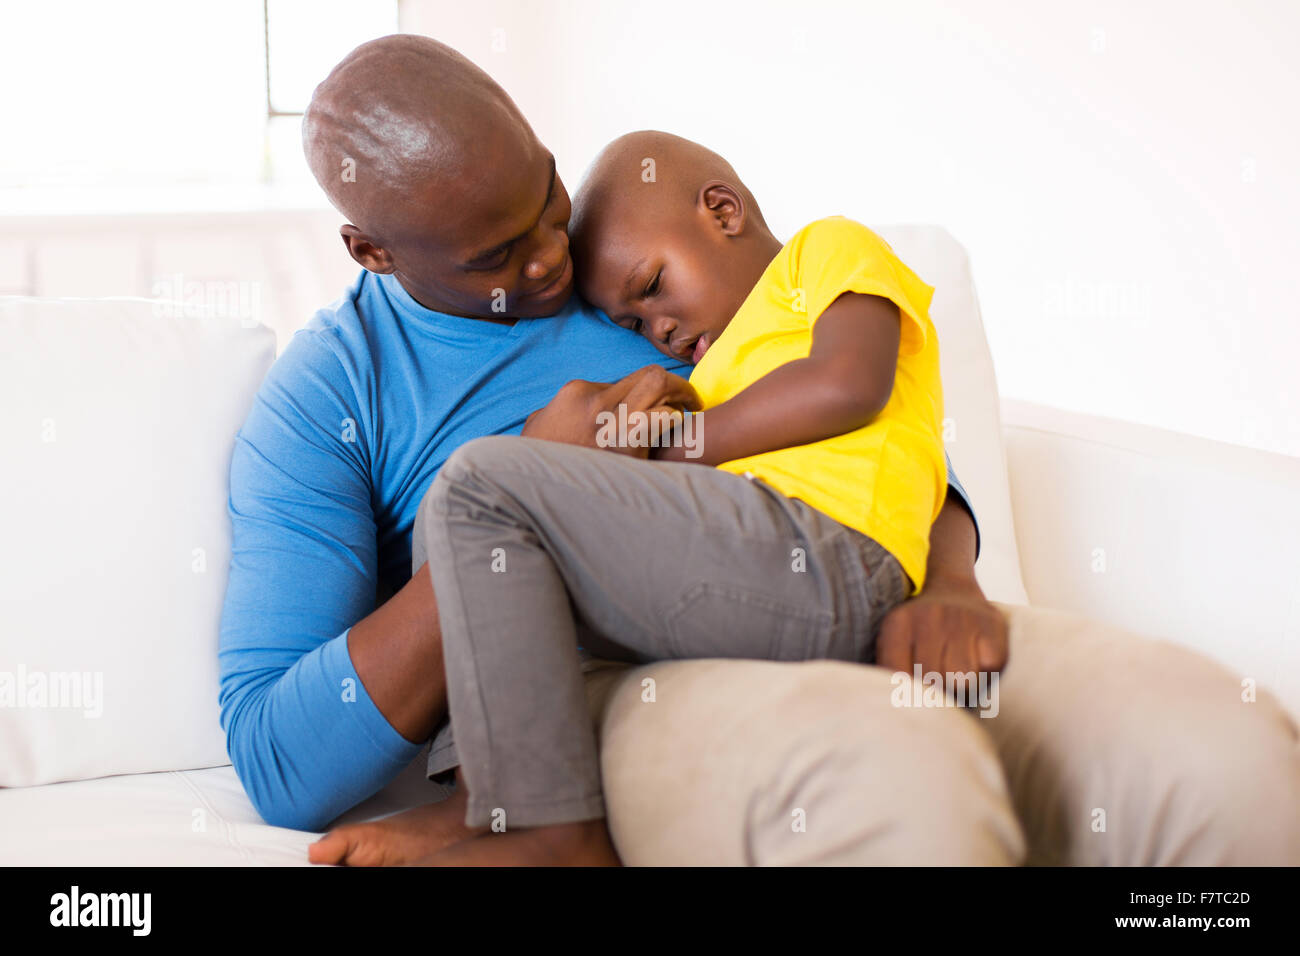 African American father comforting his ill son at home - Stock Image